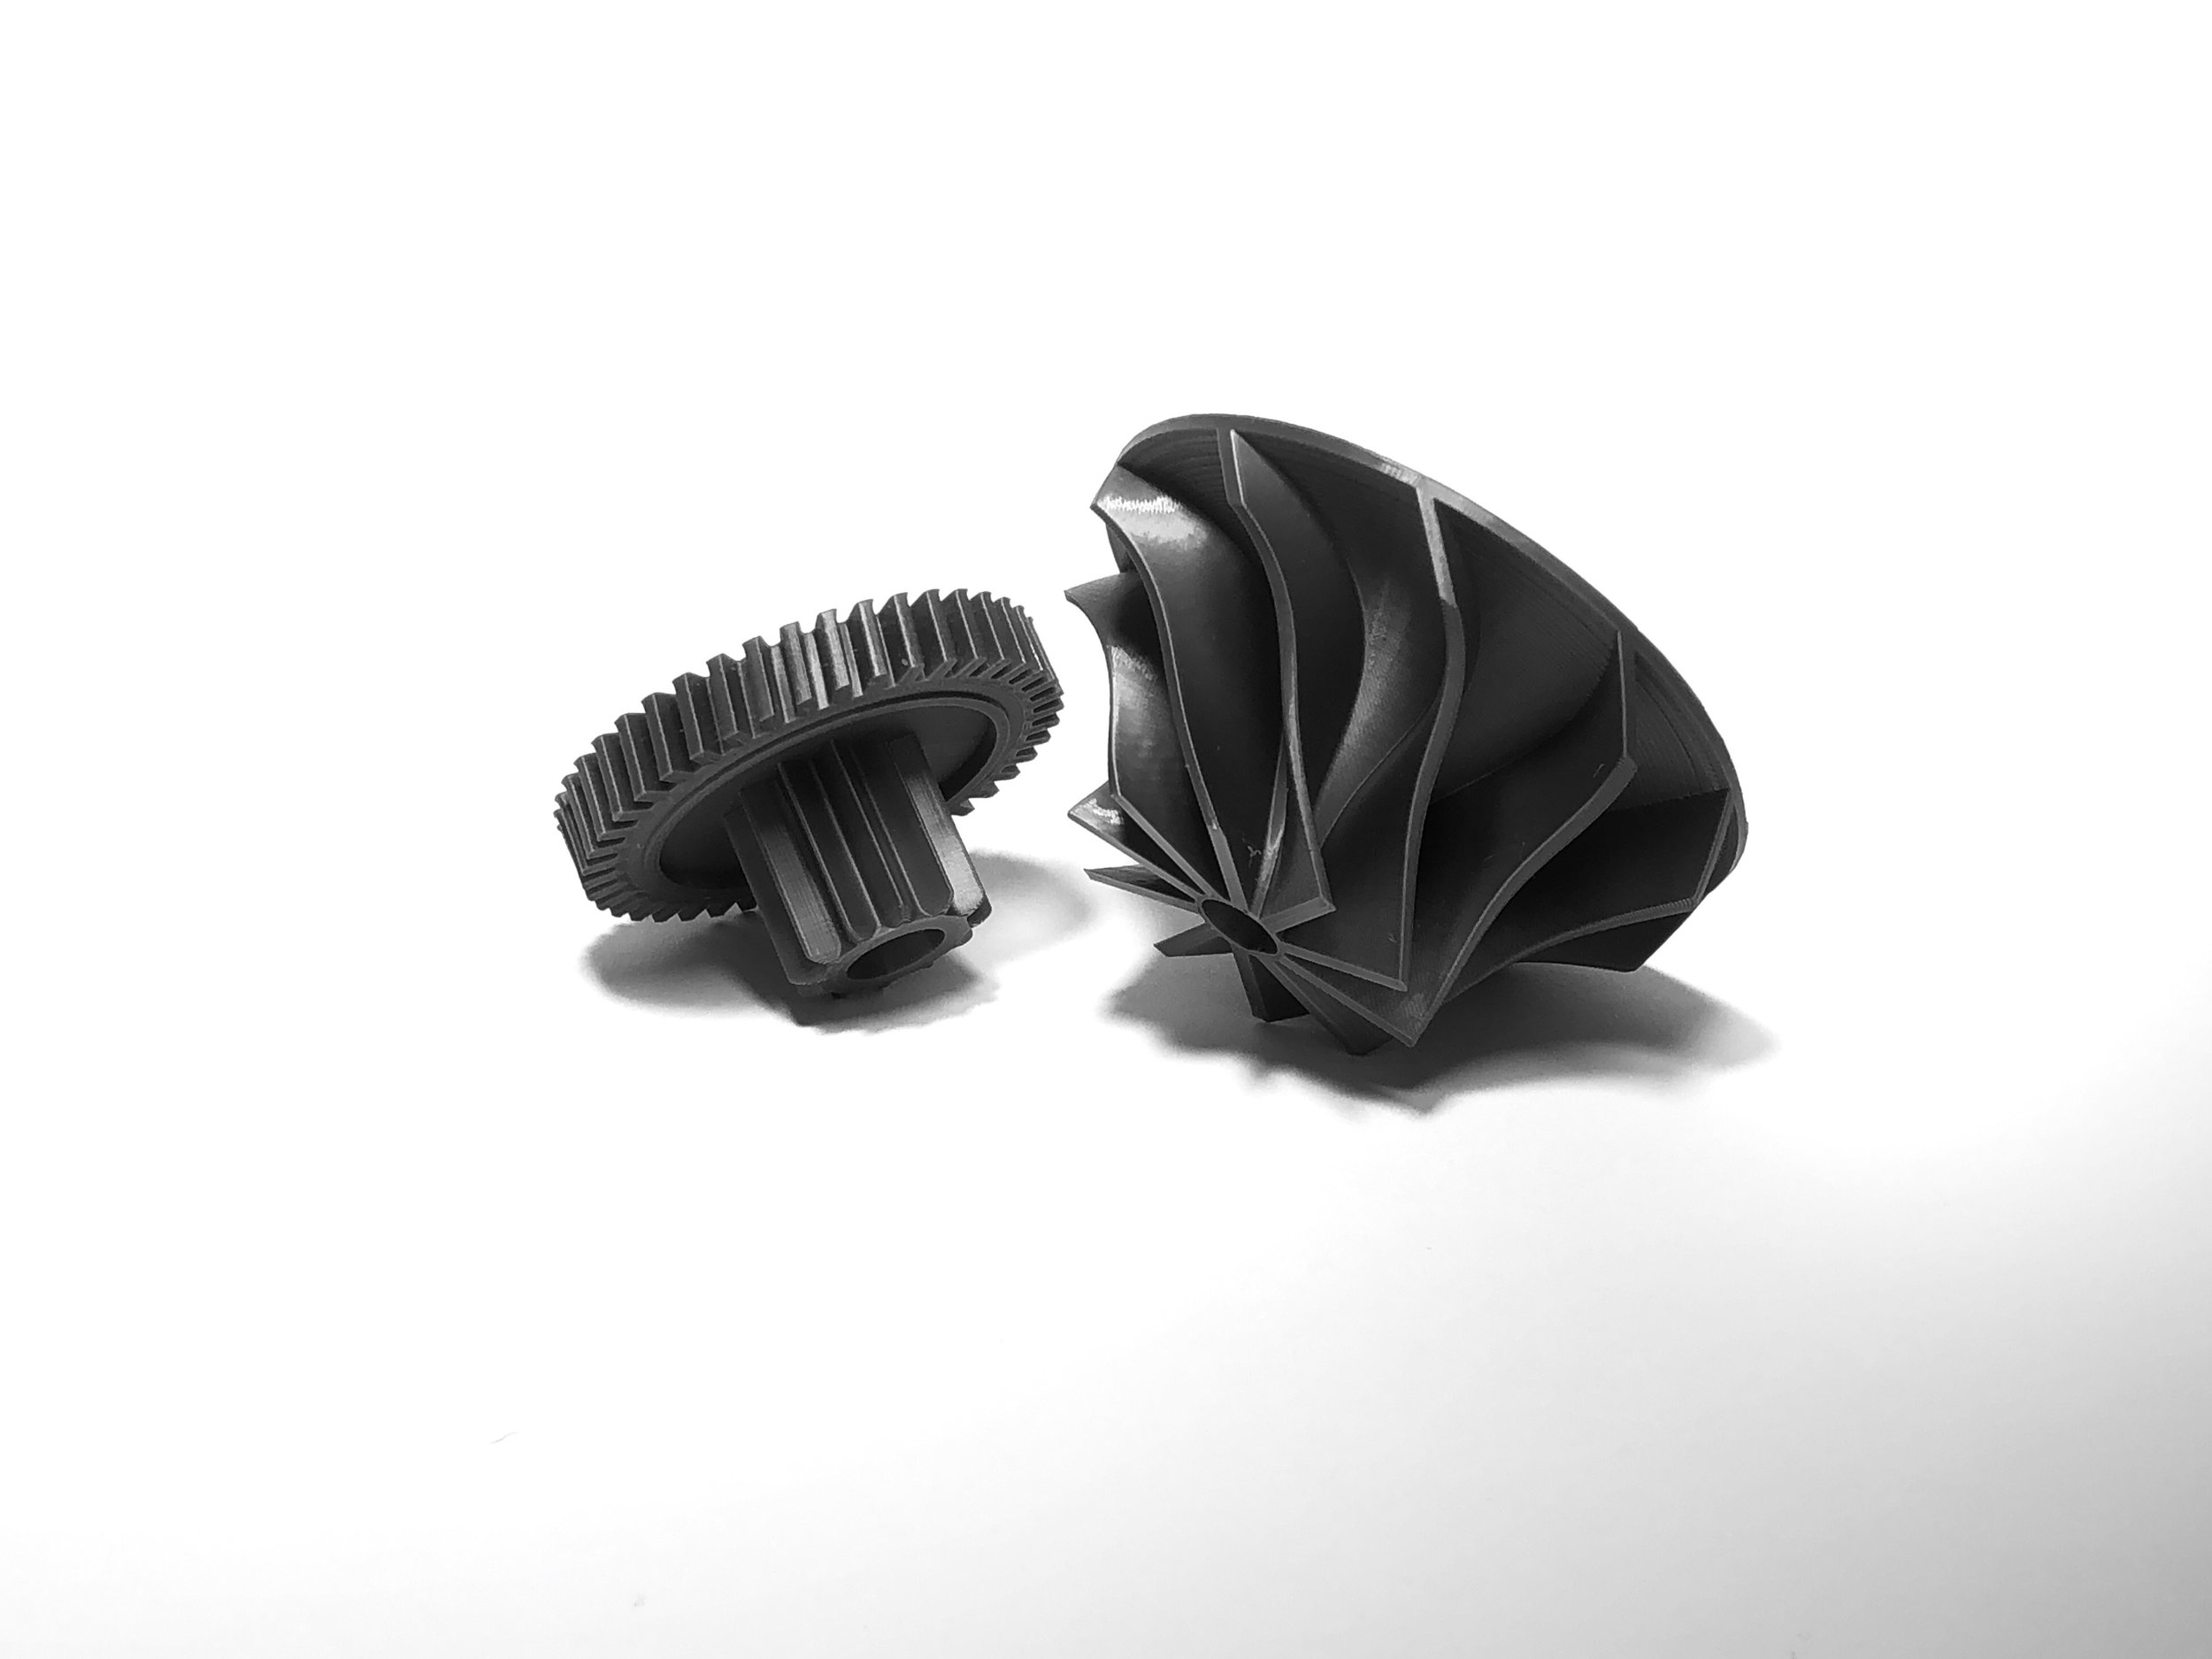 PETG - Sterilizable. High Impact. Chemically And Moisture Resistant.A great material for mechanical parts with high impact resistance and flexibility. PETG is a thermoplastic with improved properties over PLA, with high impact resistance and excellent chemical and moisture resistance. PETG can easily be sterilized.